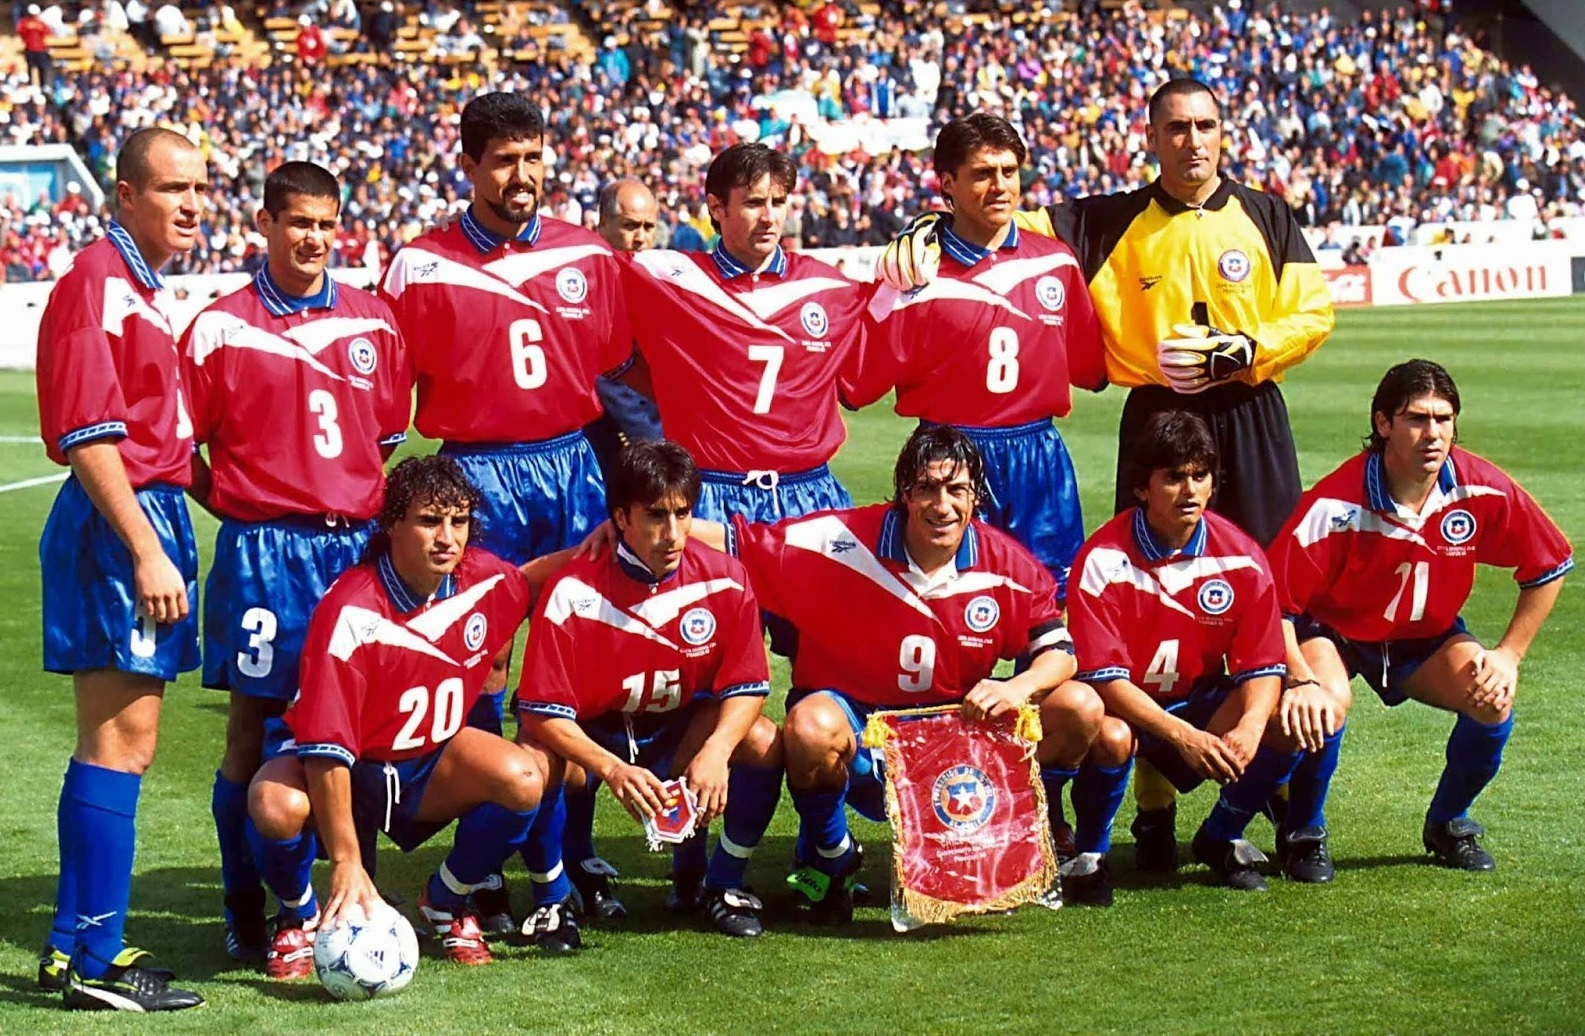 Chile-1998-Reebok-world-cup-home-kit-red-blue-blue-starting-11.jpg